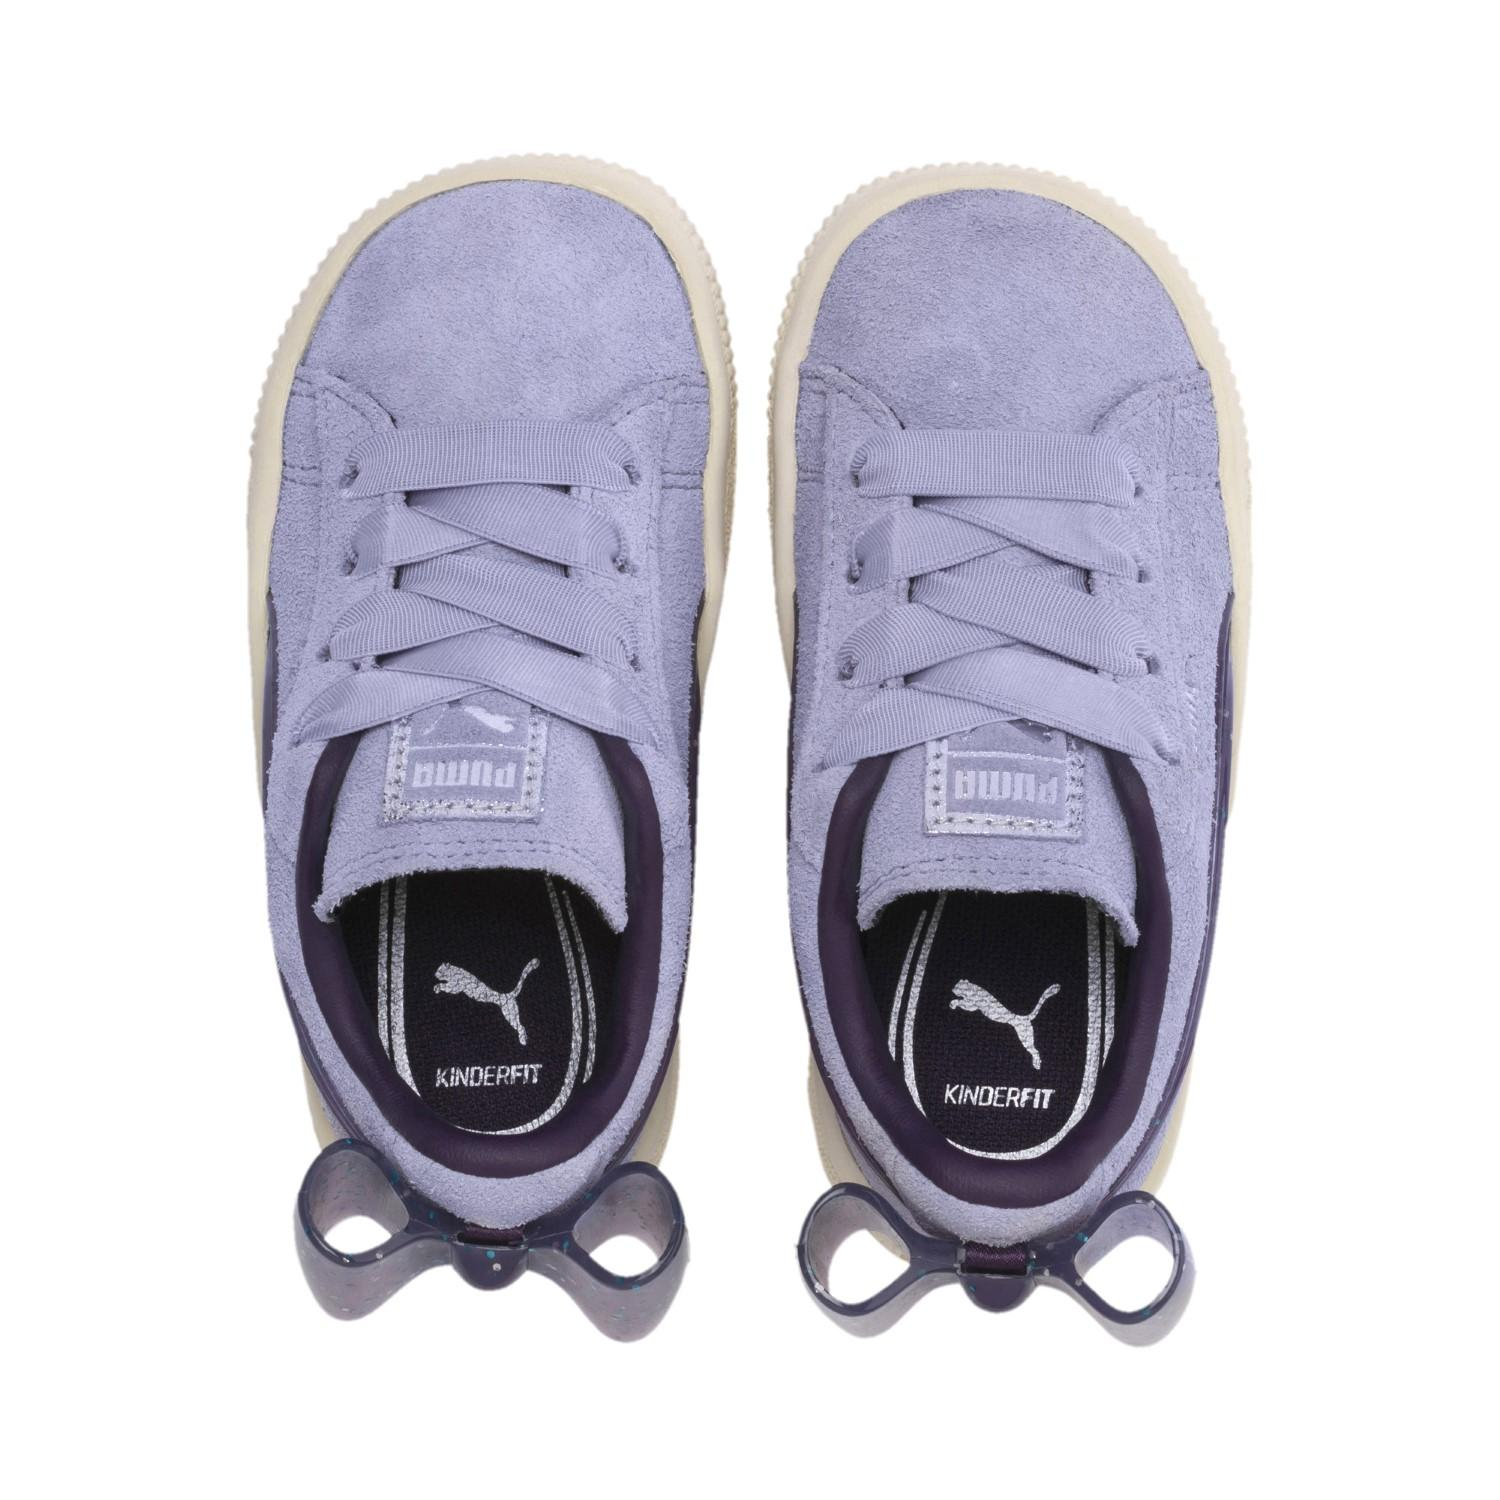 f1a52f57ad27 ... Suede Jelly Bow Ac Sneakers Ps Unisex Baby - Lyst. View fullscreen